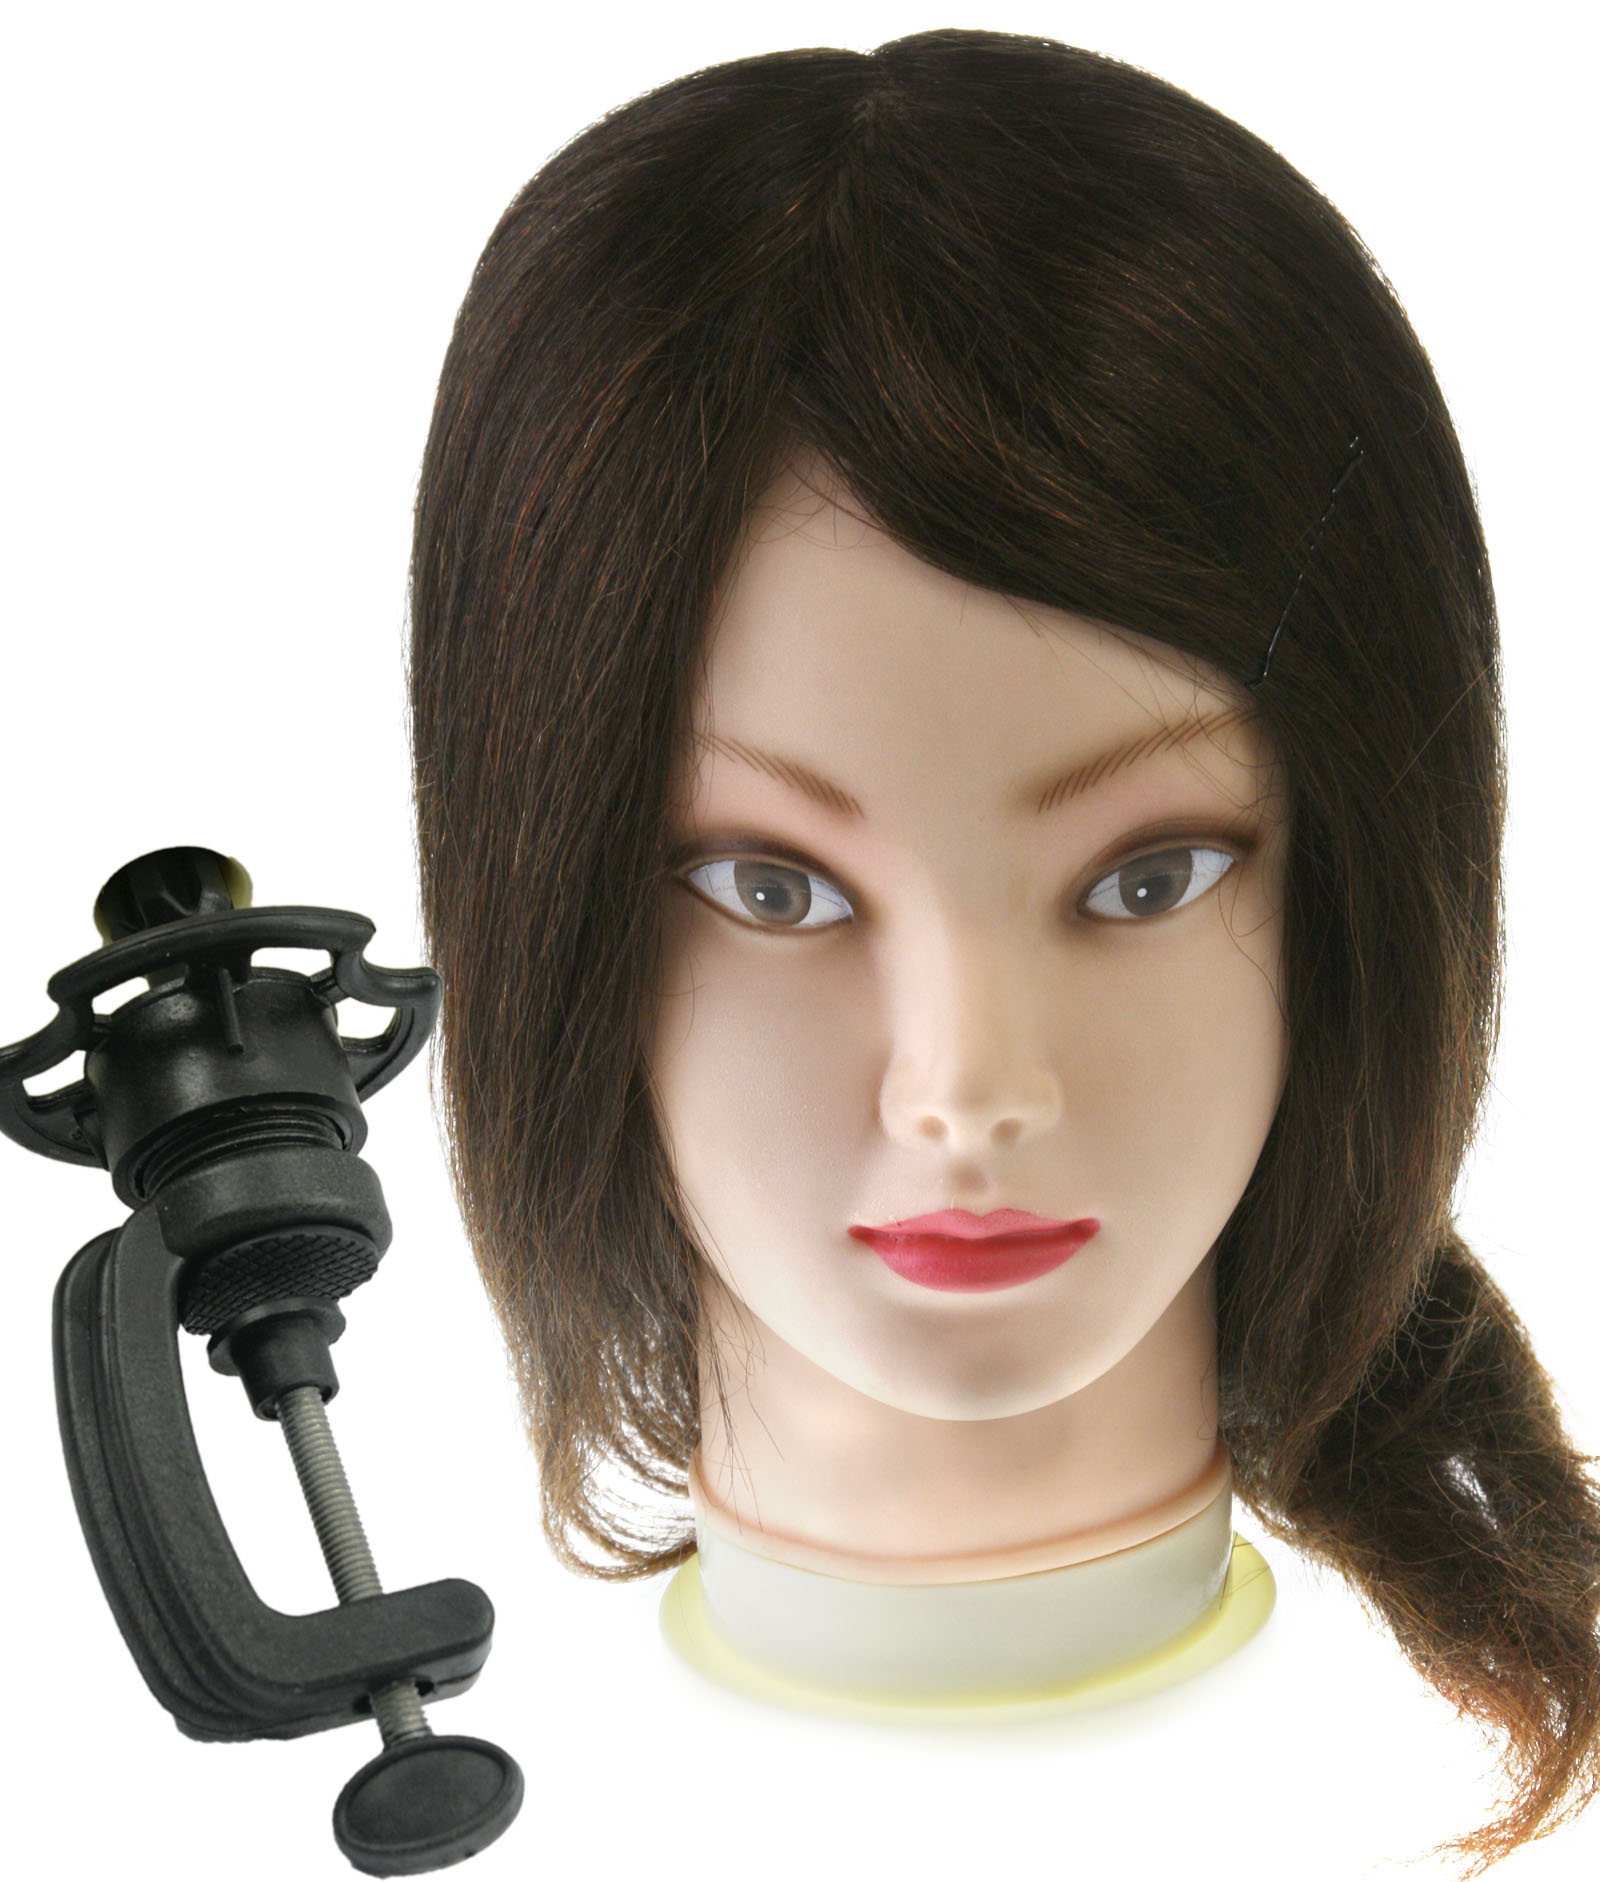 Hairdressing Practice Training Head Doll Mannequin Clamp